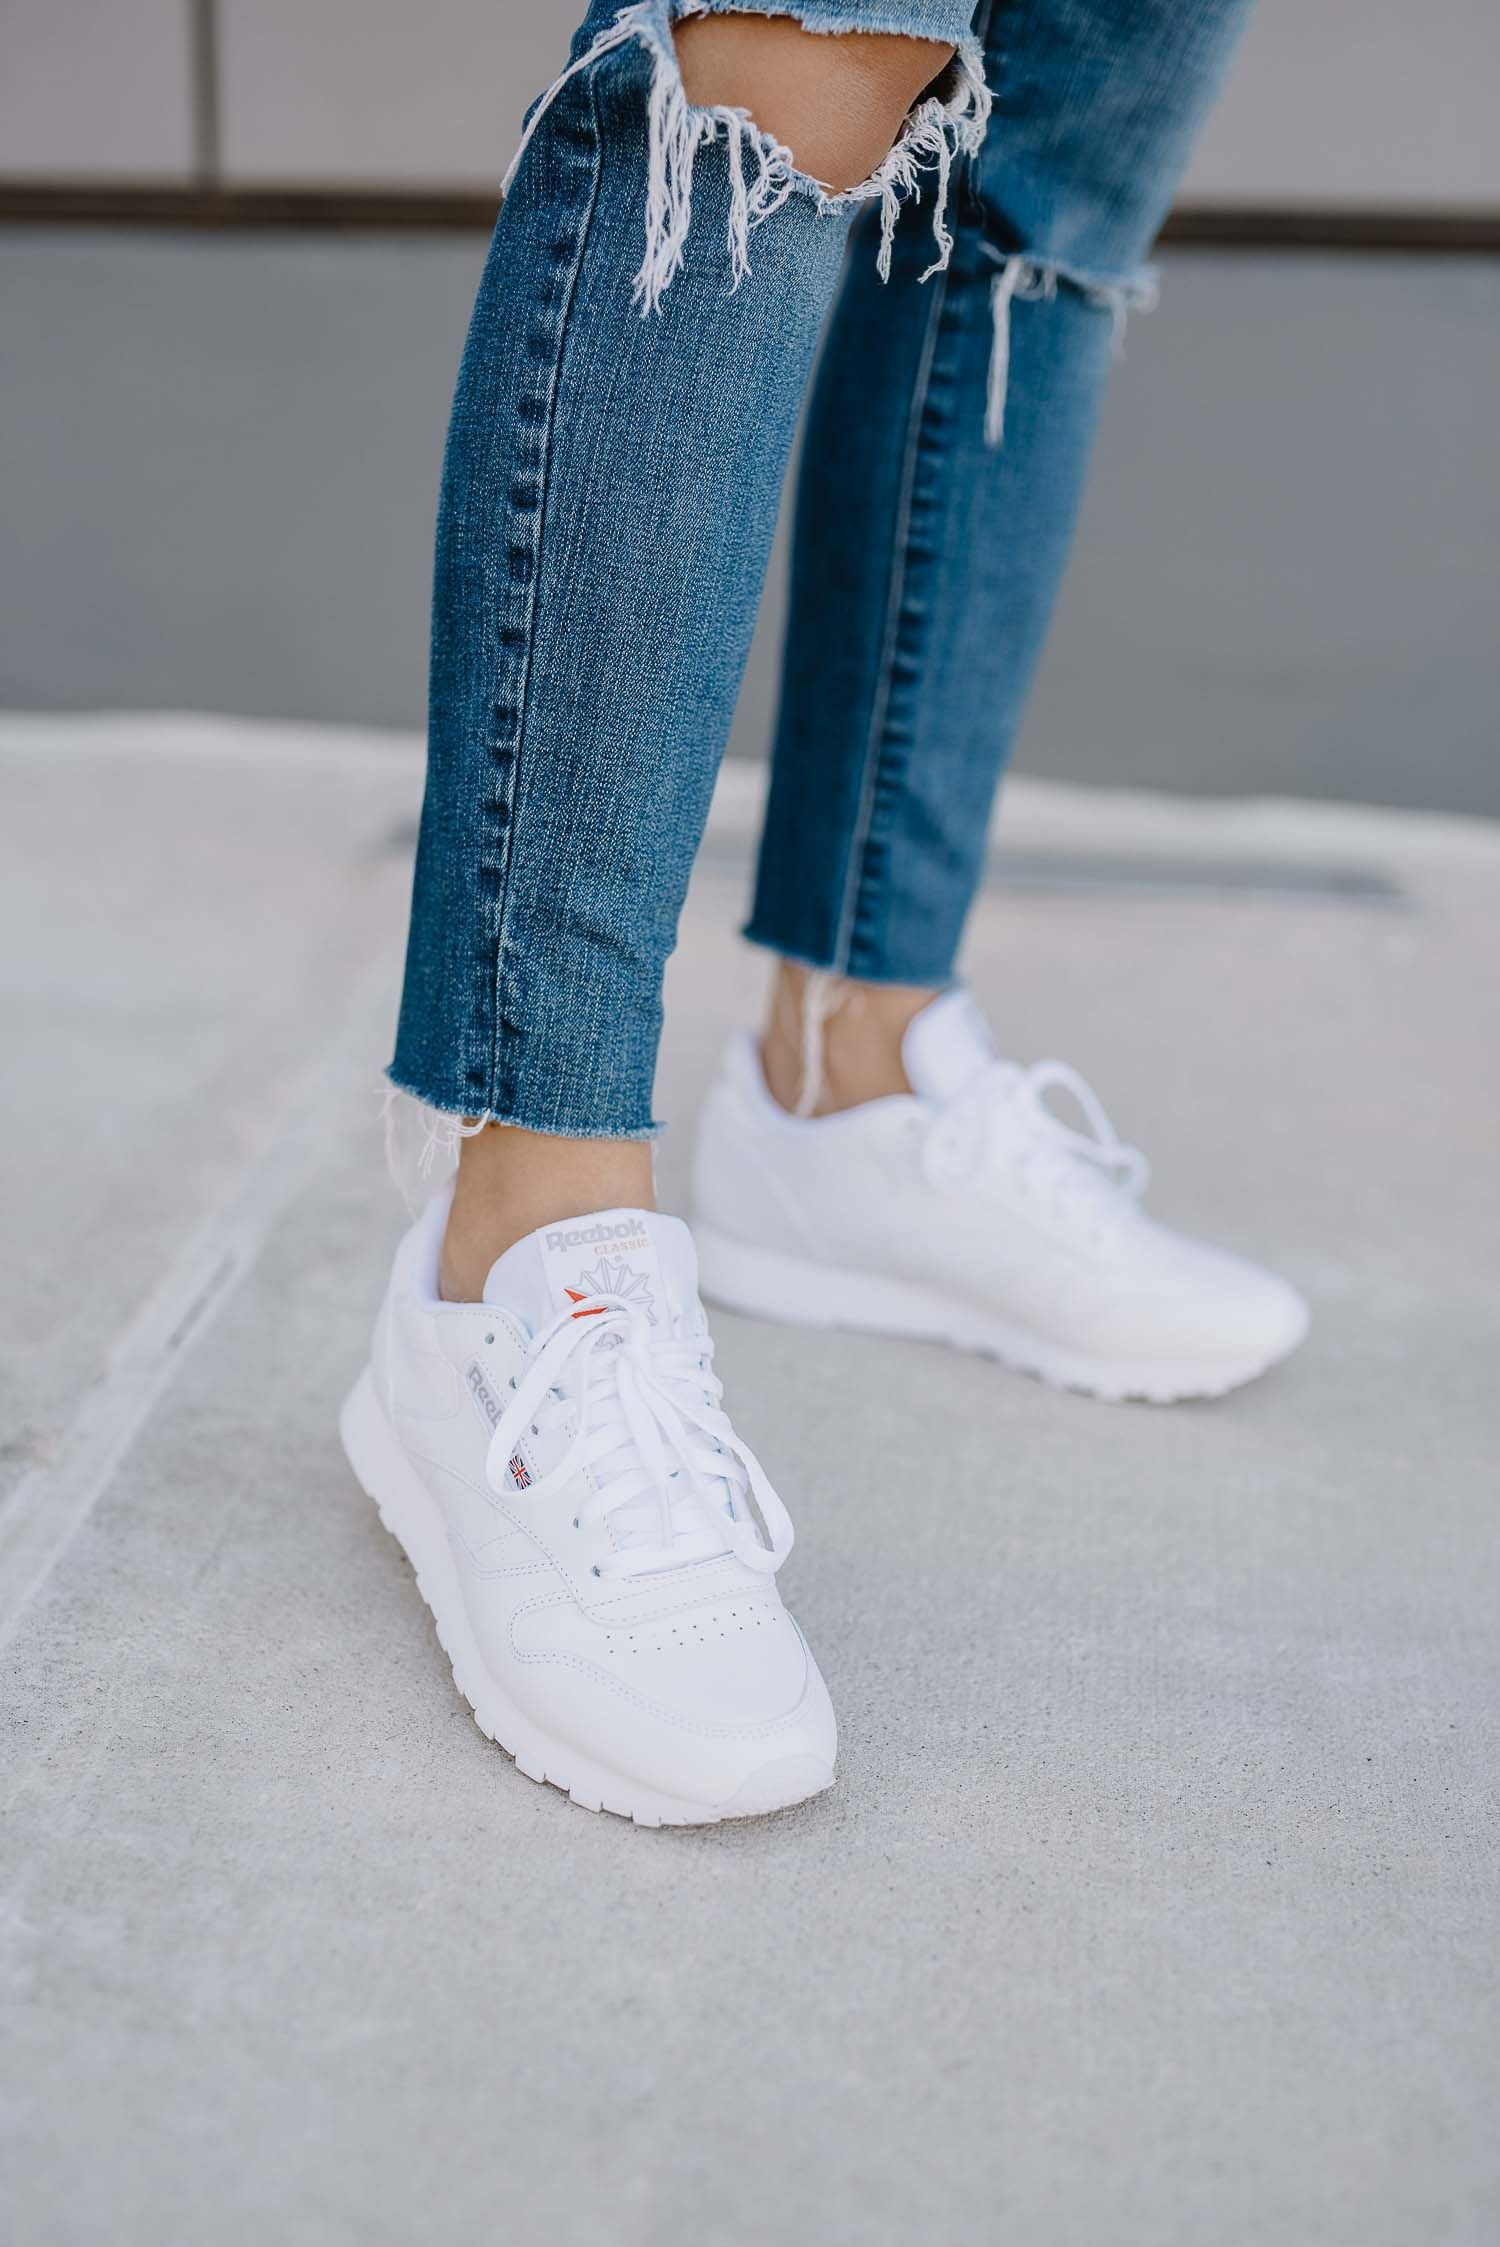 Defectuoso rosado Viaje  How To Style Reebok Classics Like A Fashion Blogger - My Style Vita | White  sneakers outfit, White sneakers women, Reebok classic outfit